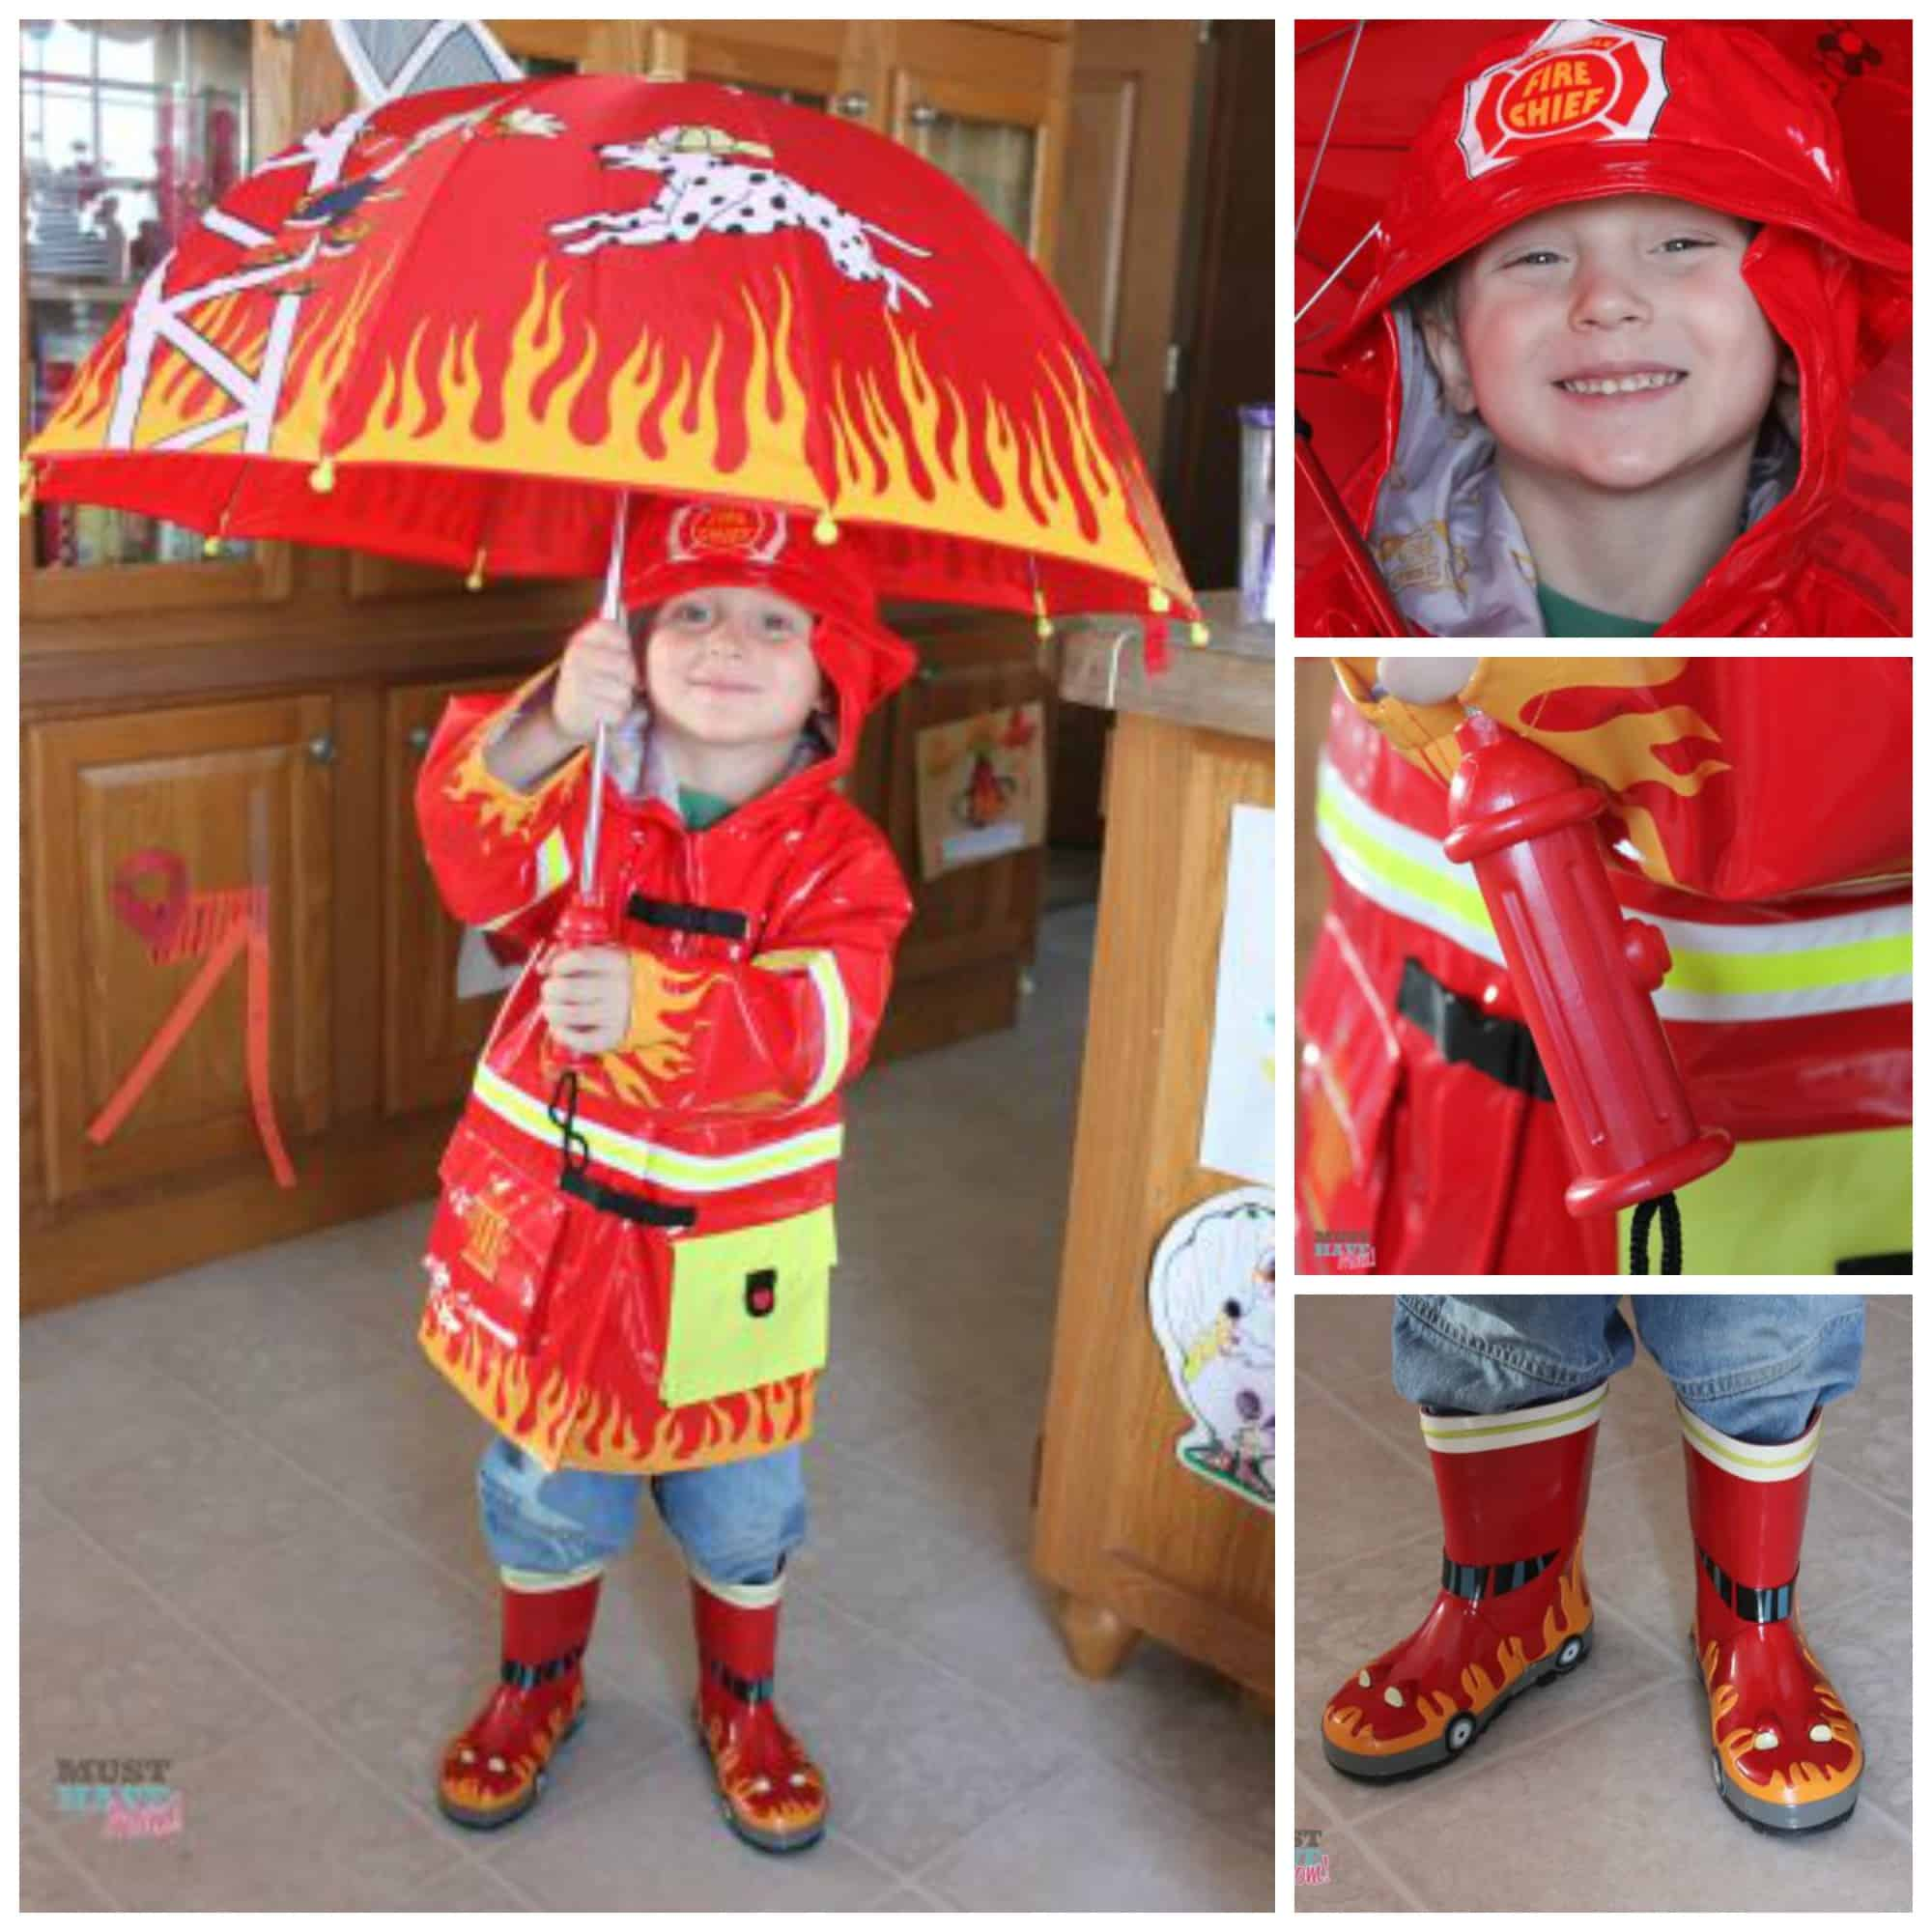 cb50ad625 Must Have Holiday Gift Picks For Boys! Kidorable Rain Gear - Must ...